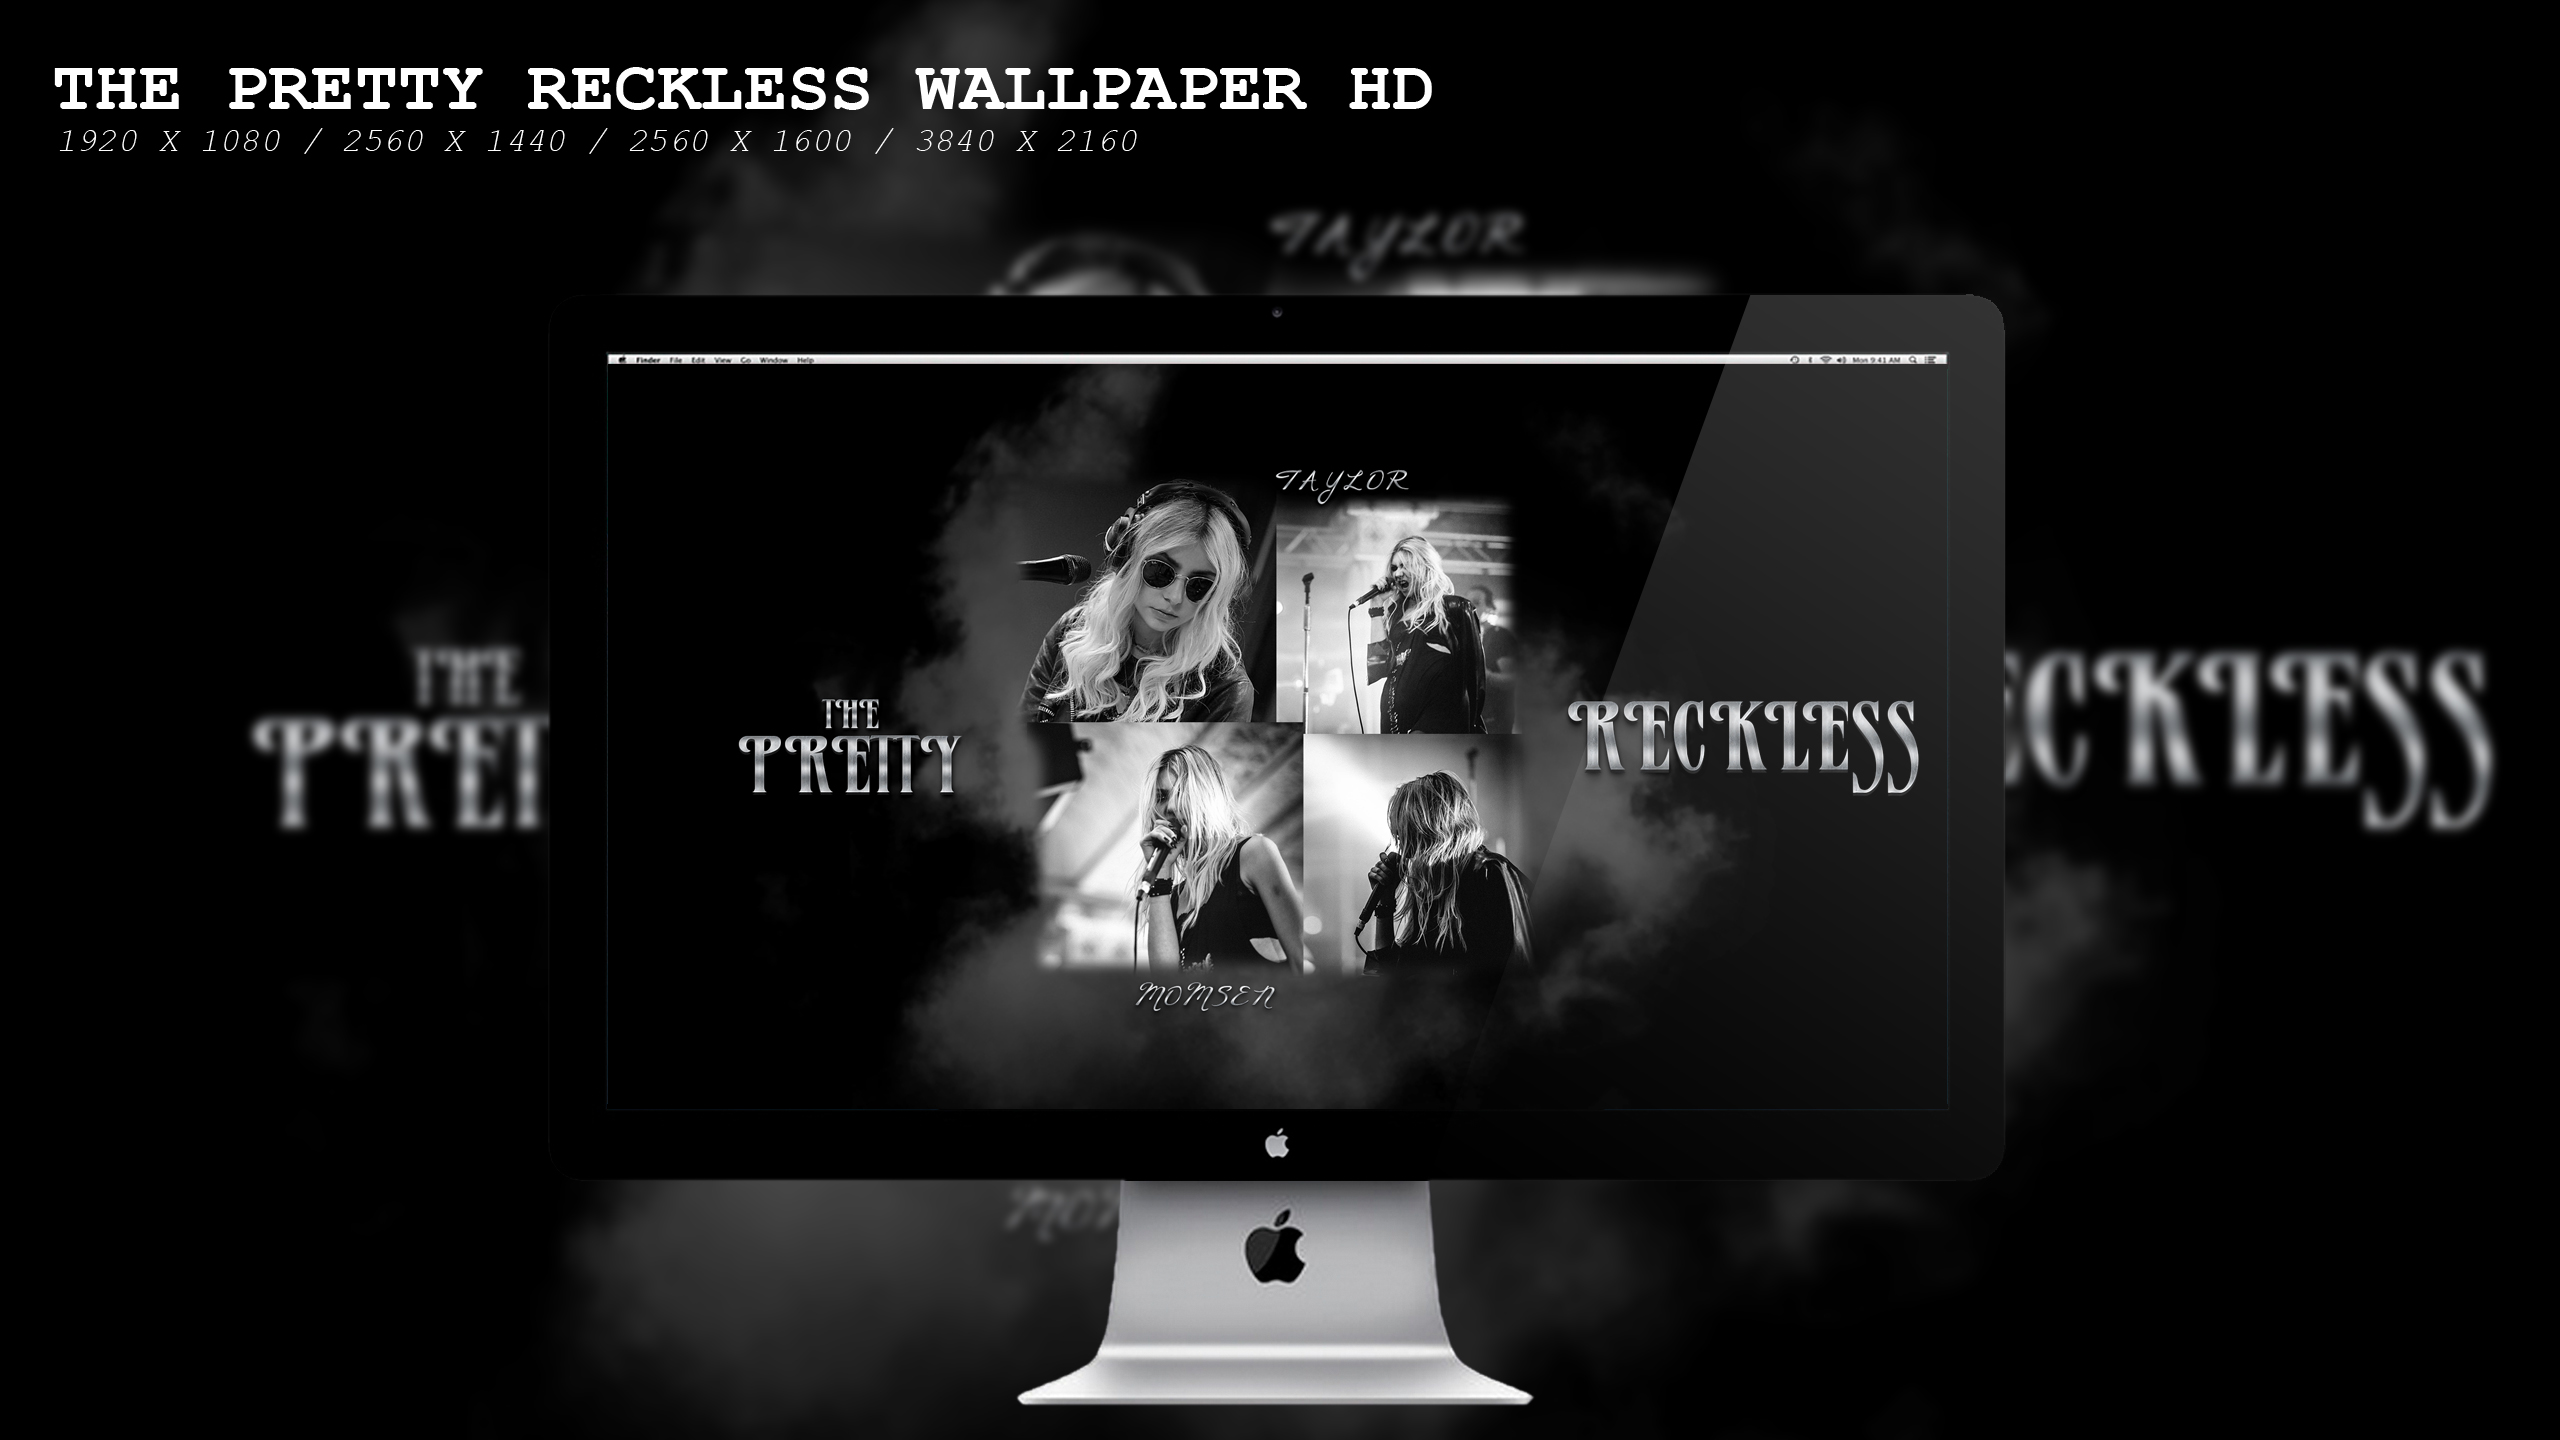 reckless wallpapers hd - photo #20